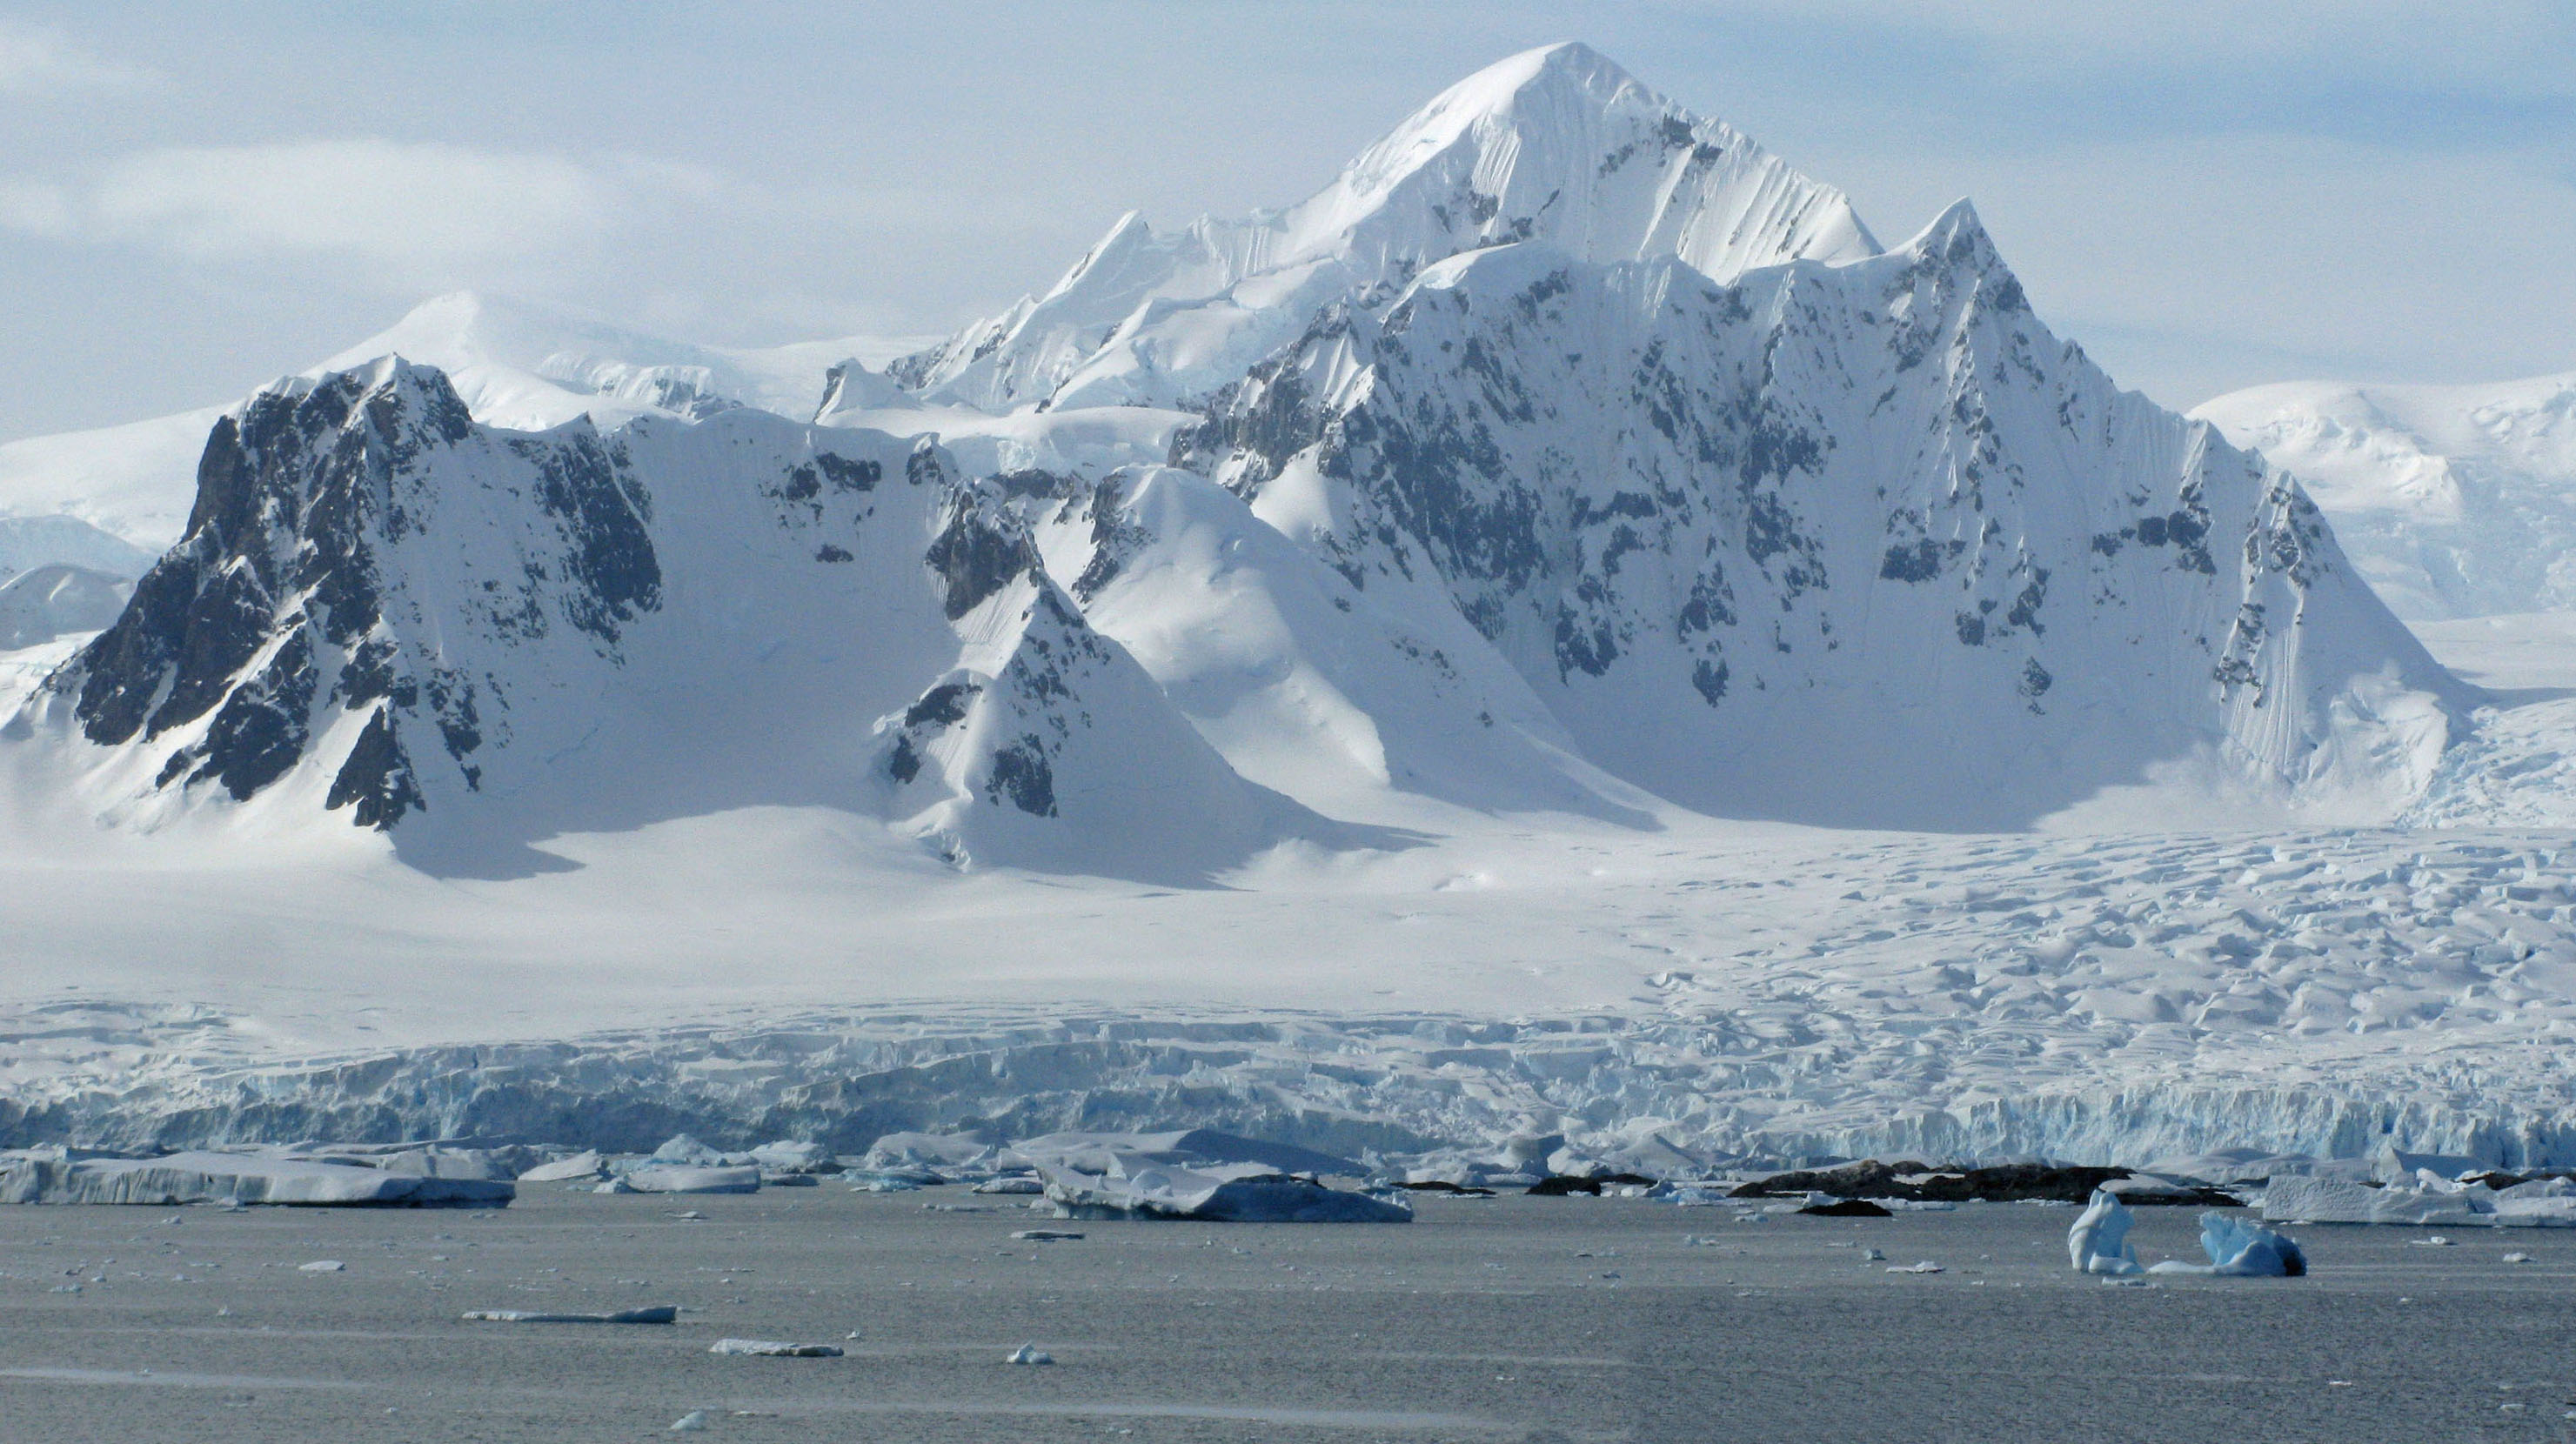 1 antarctica � simply the best � february 23 2012 notes